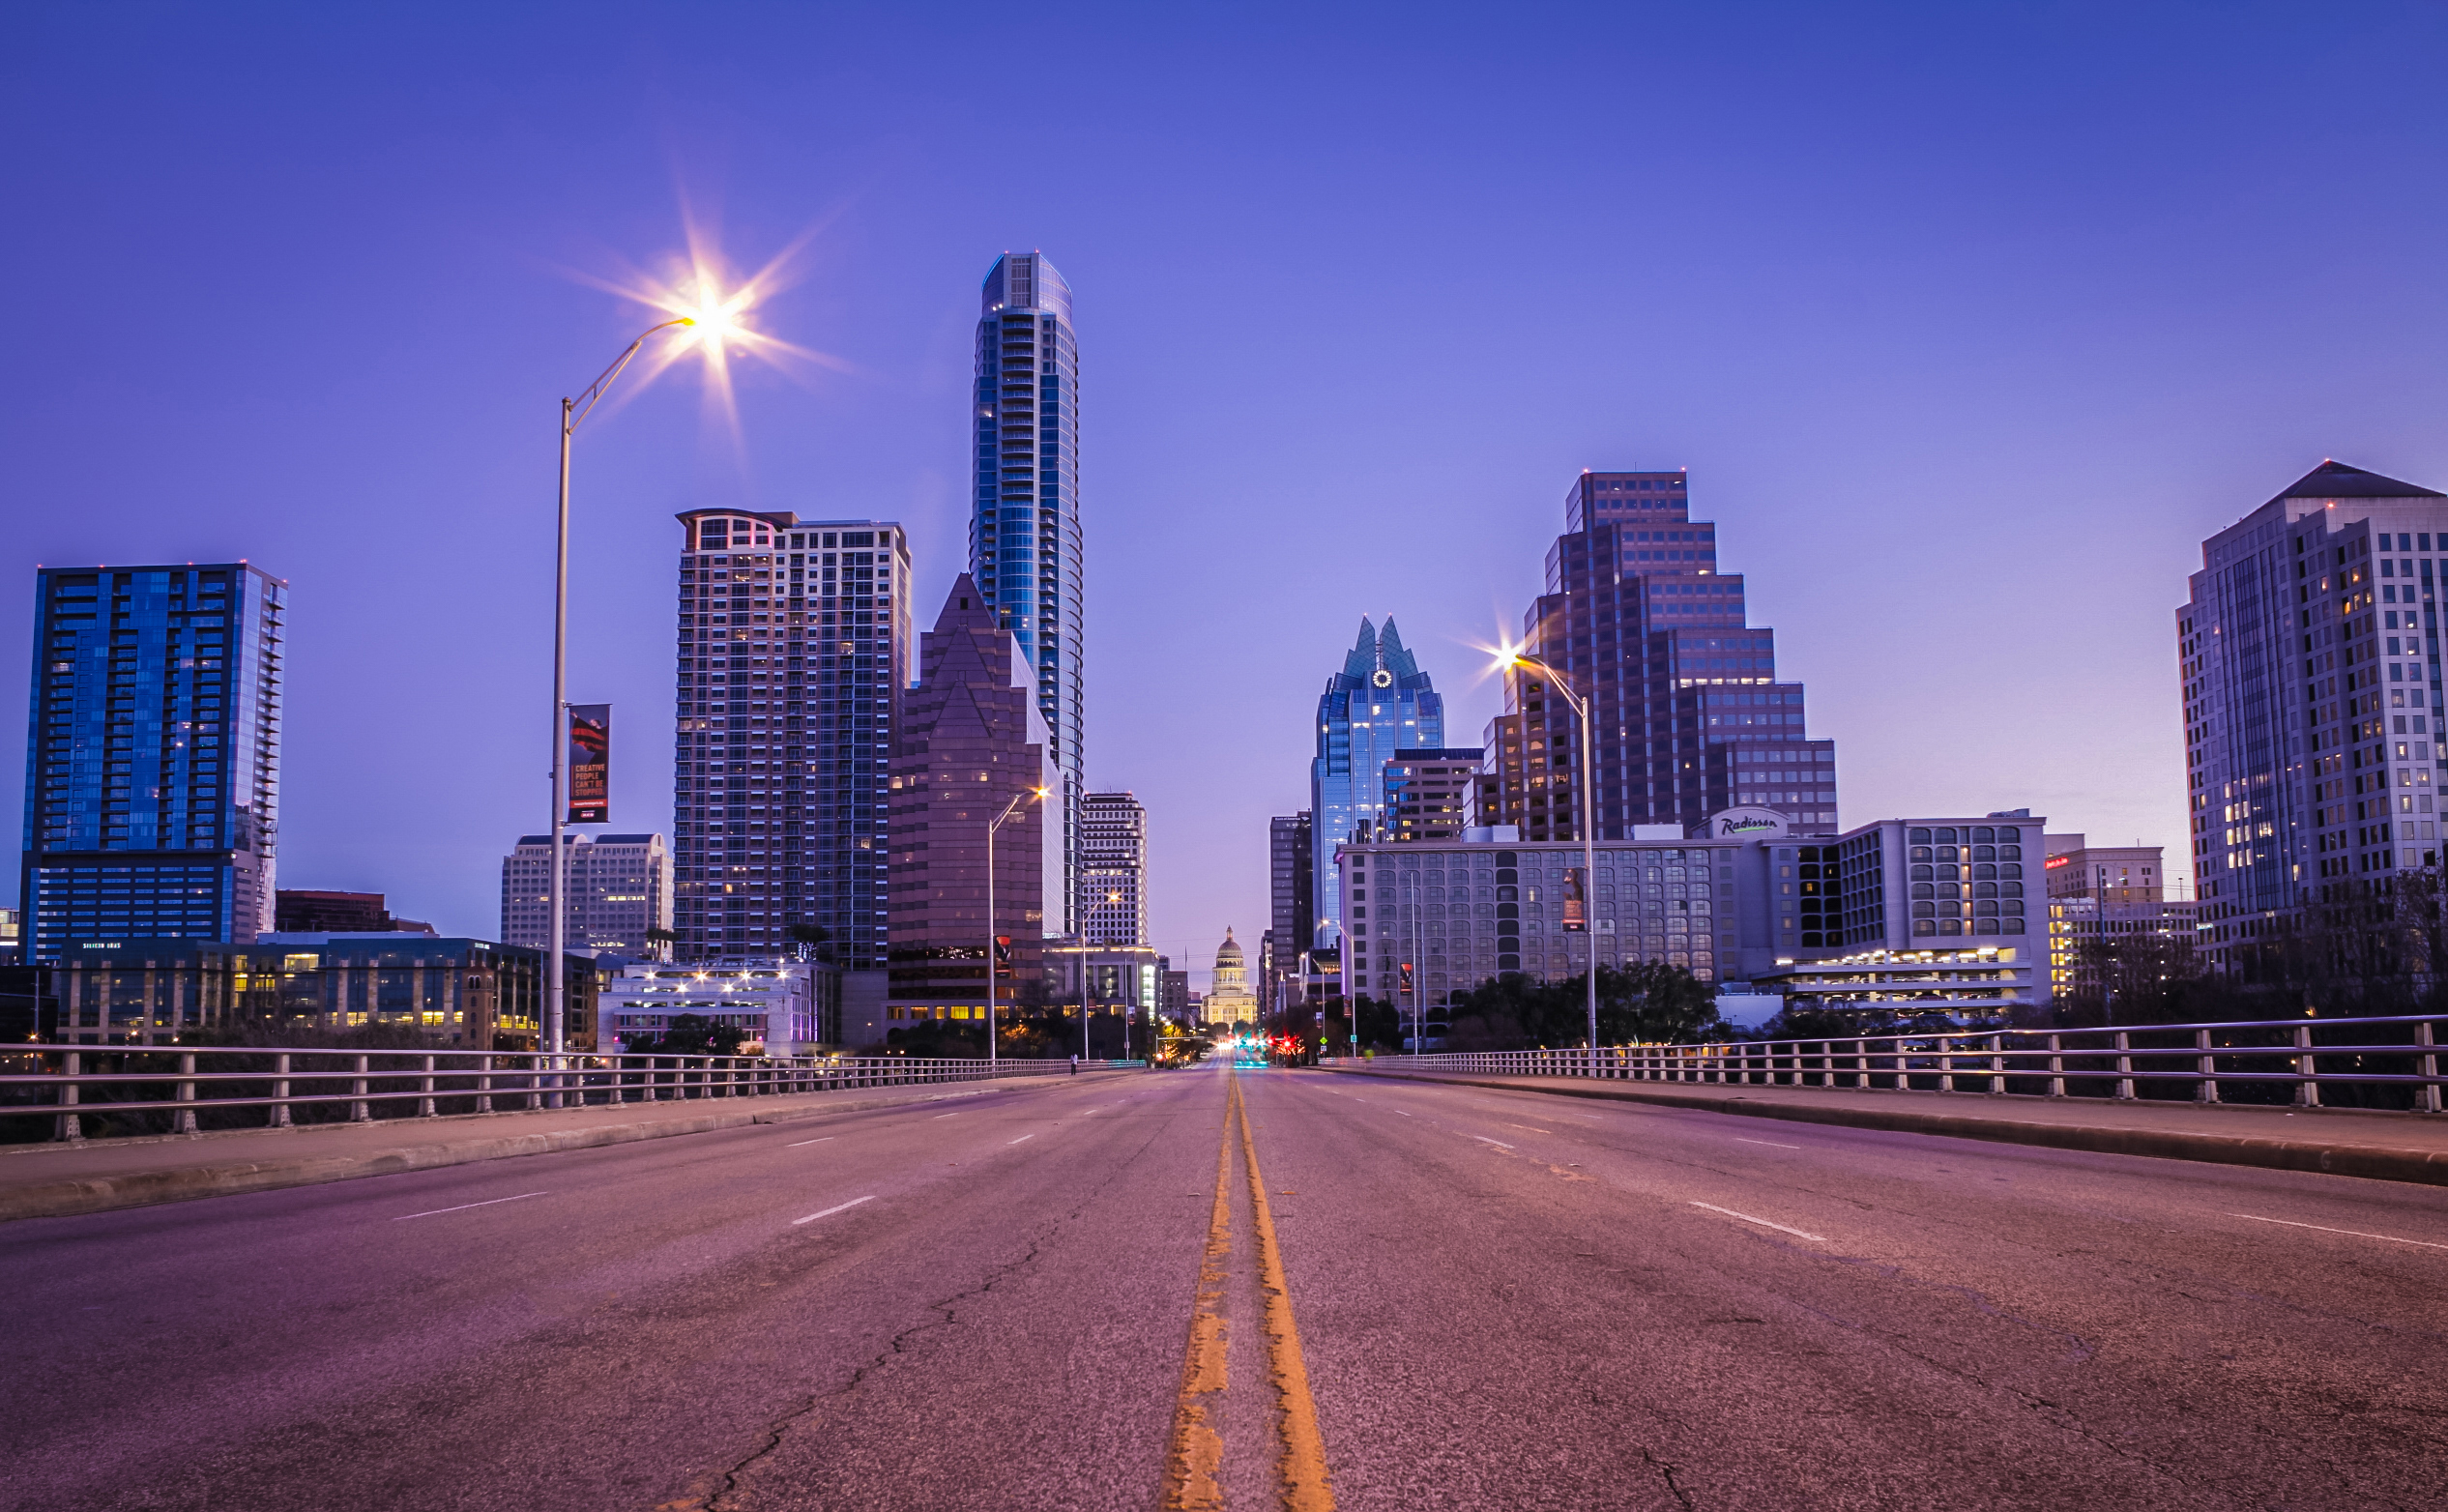 Austin Maps   Austin, TX Hotels, Events, Attractions, Things To Do on